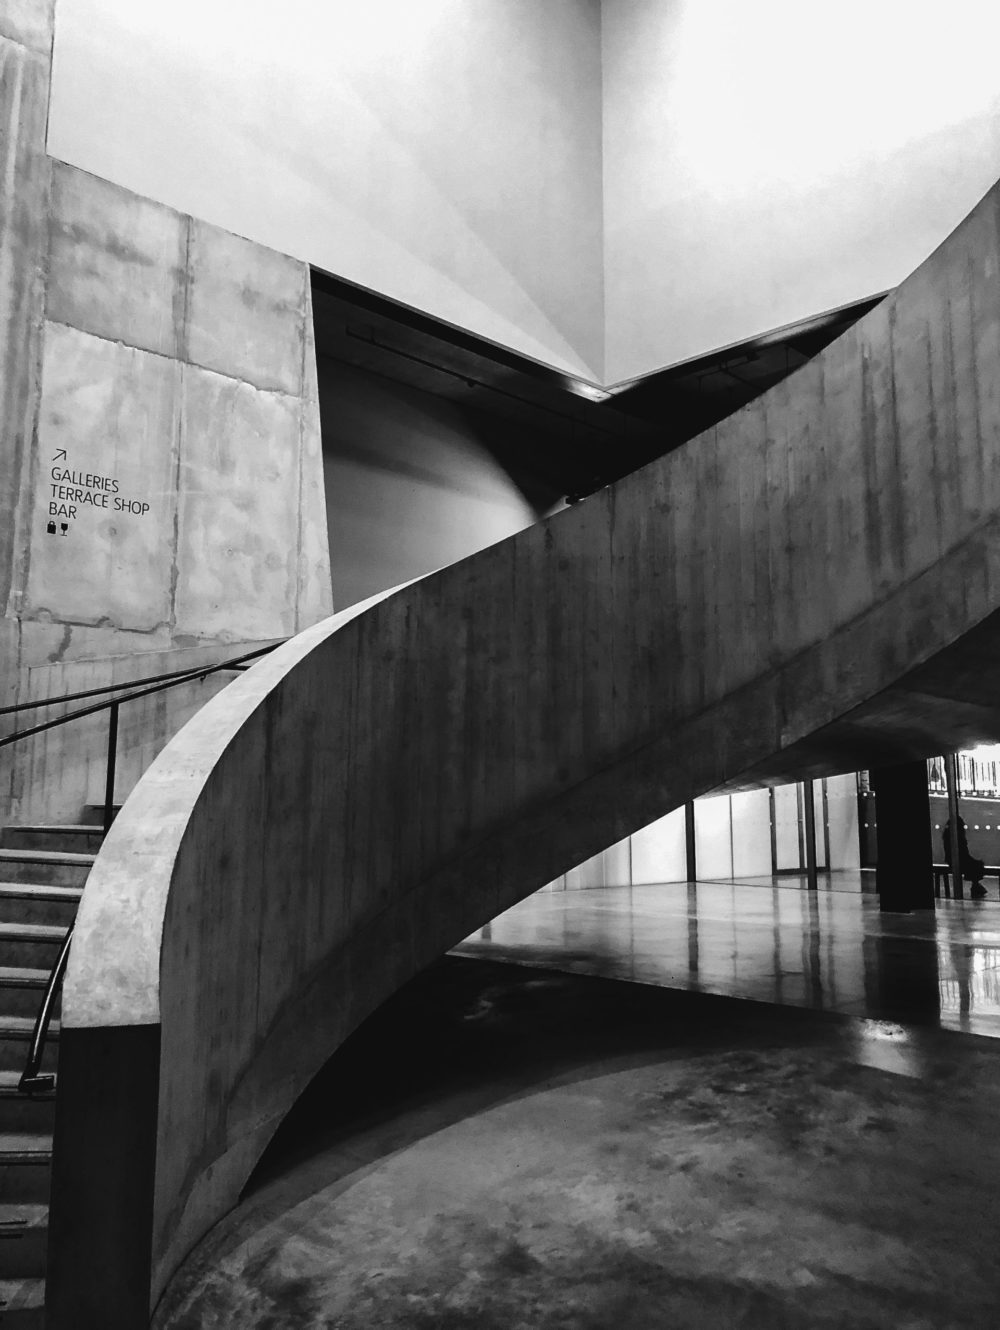 Black and white photo of curving staircase in building lobby. Stone floors and high ceiling with large windows in background.